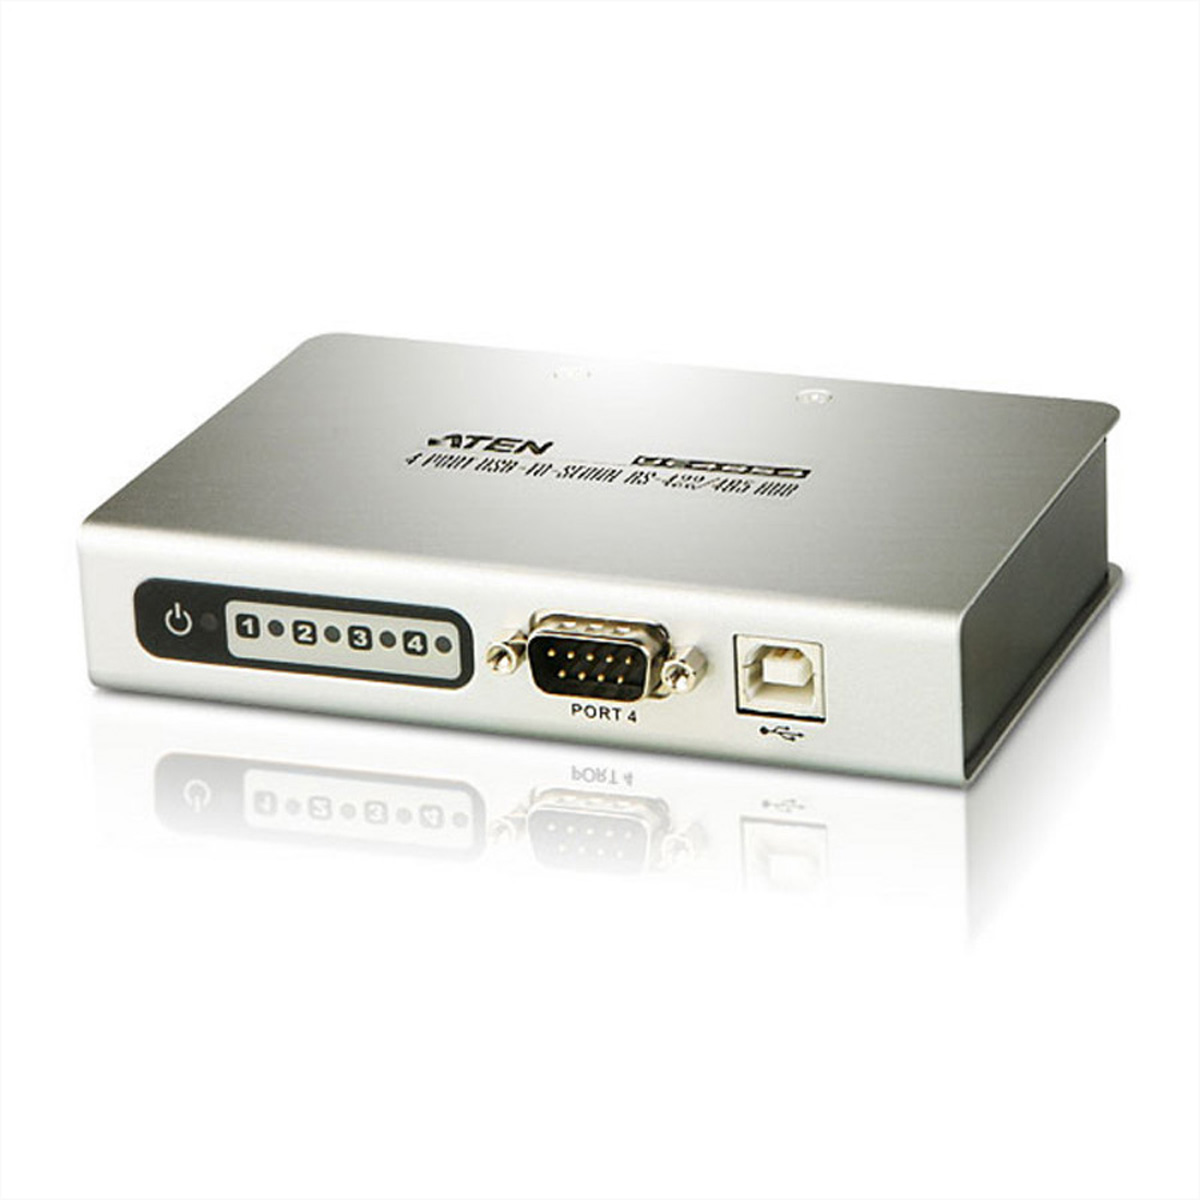 ATEN UC4854 4P USB-Serial RS-422/485 Hub